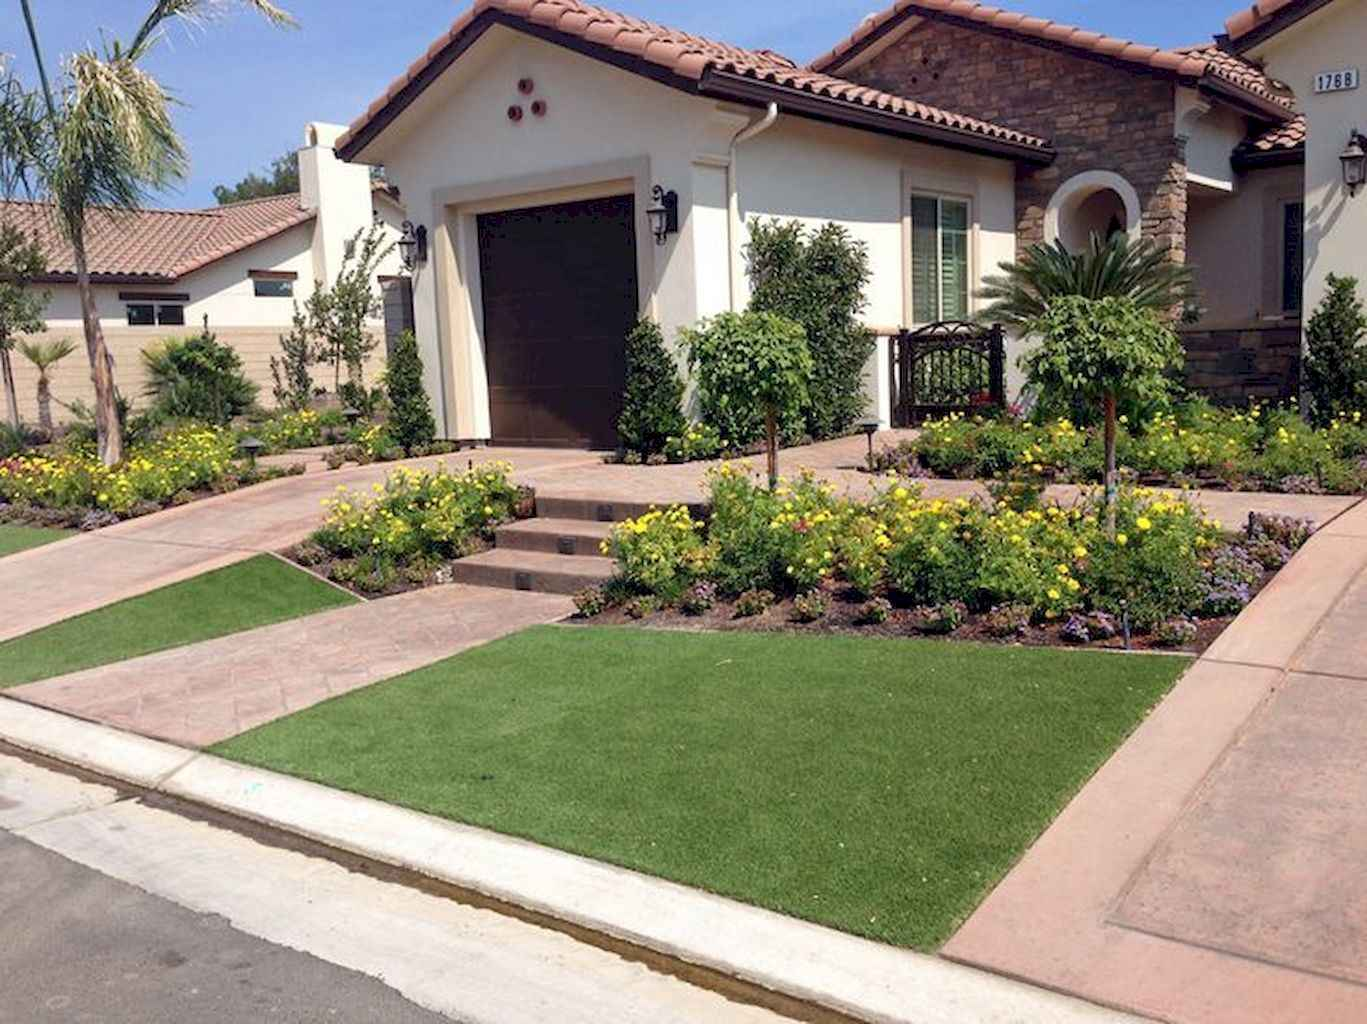 35 Beautiful Frontyard Landscaping Design Ideas and Remodel (31)